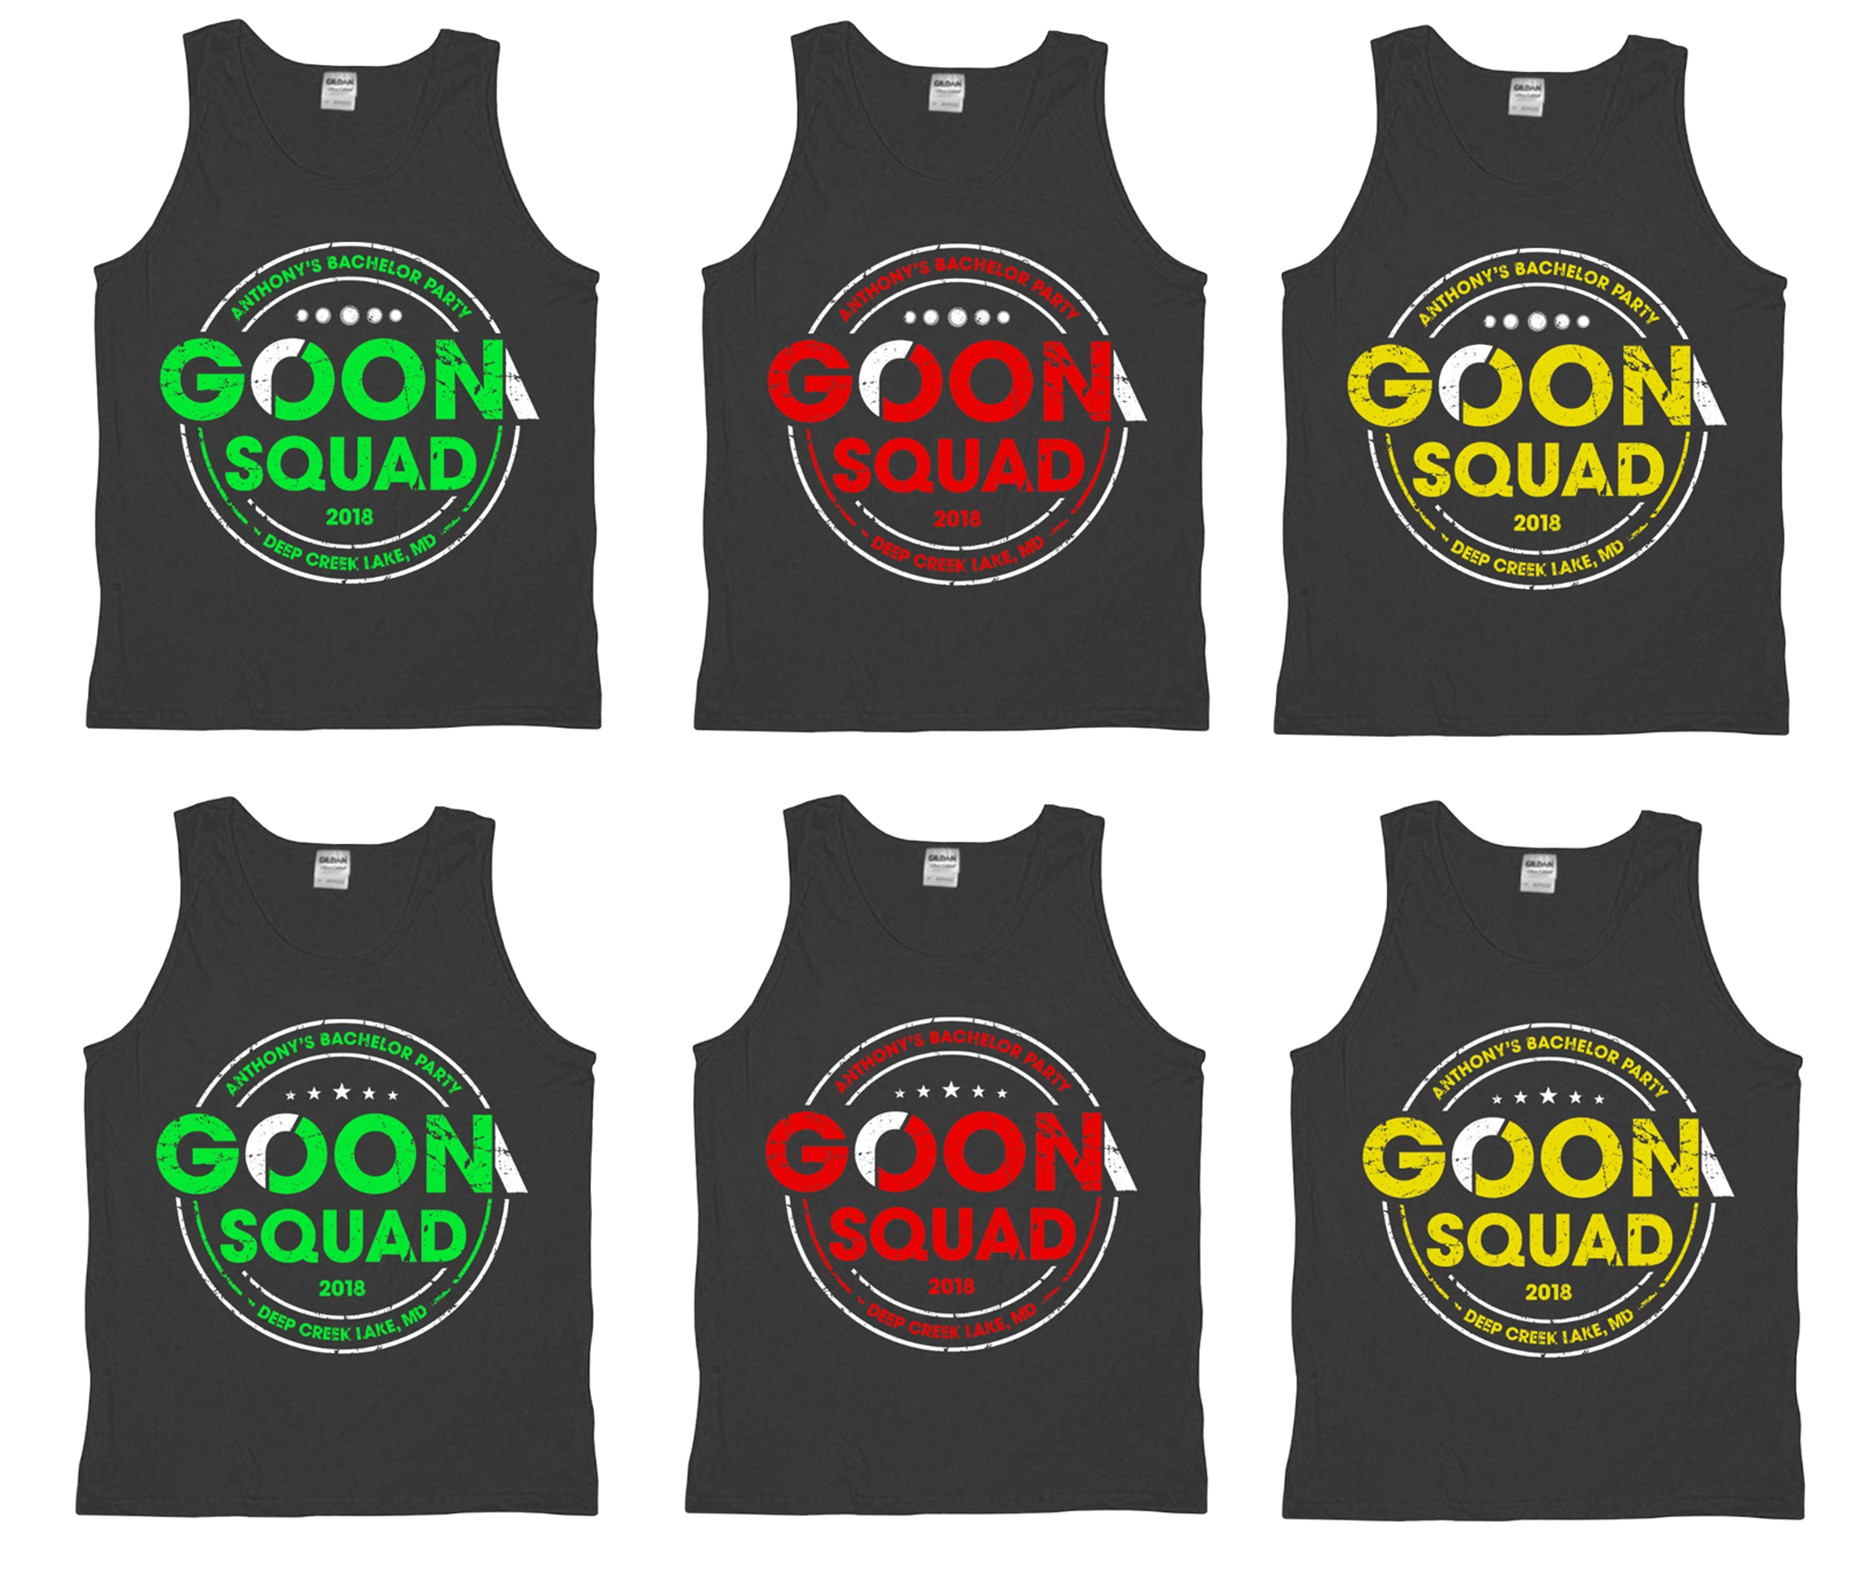 Bachelor Party Needs Funny Tank Tops